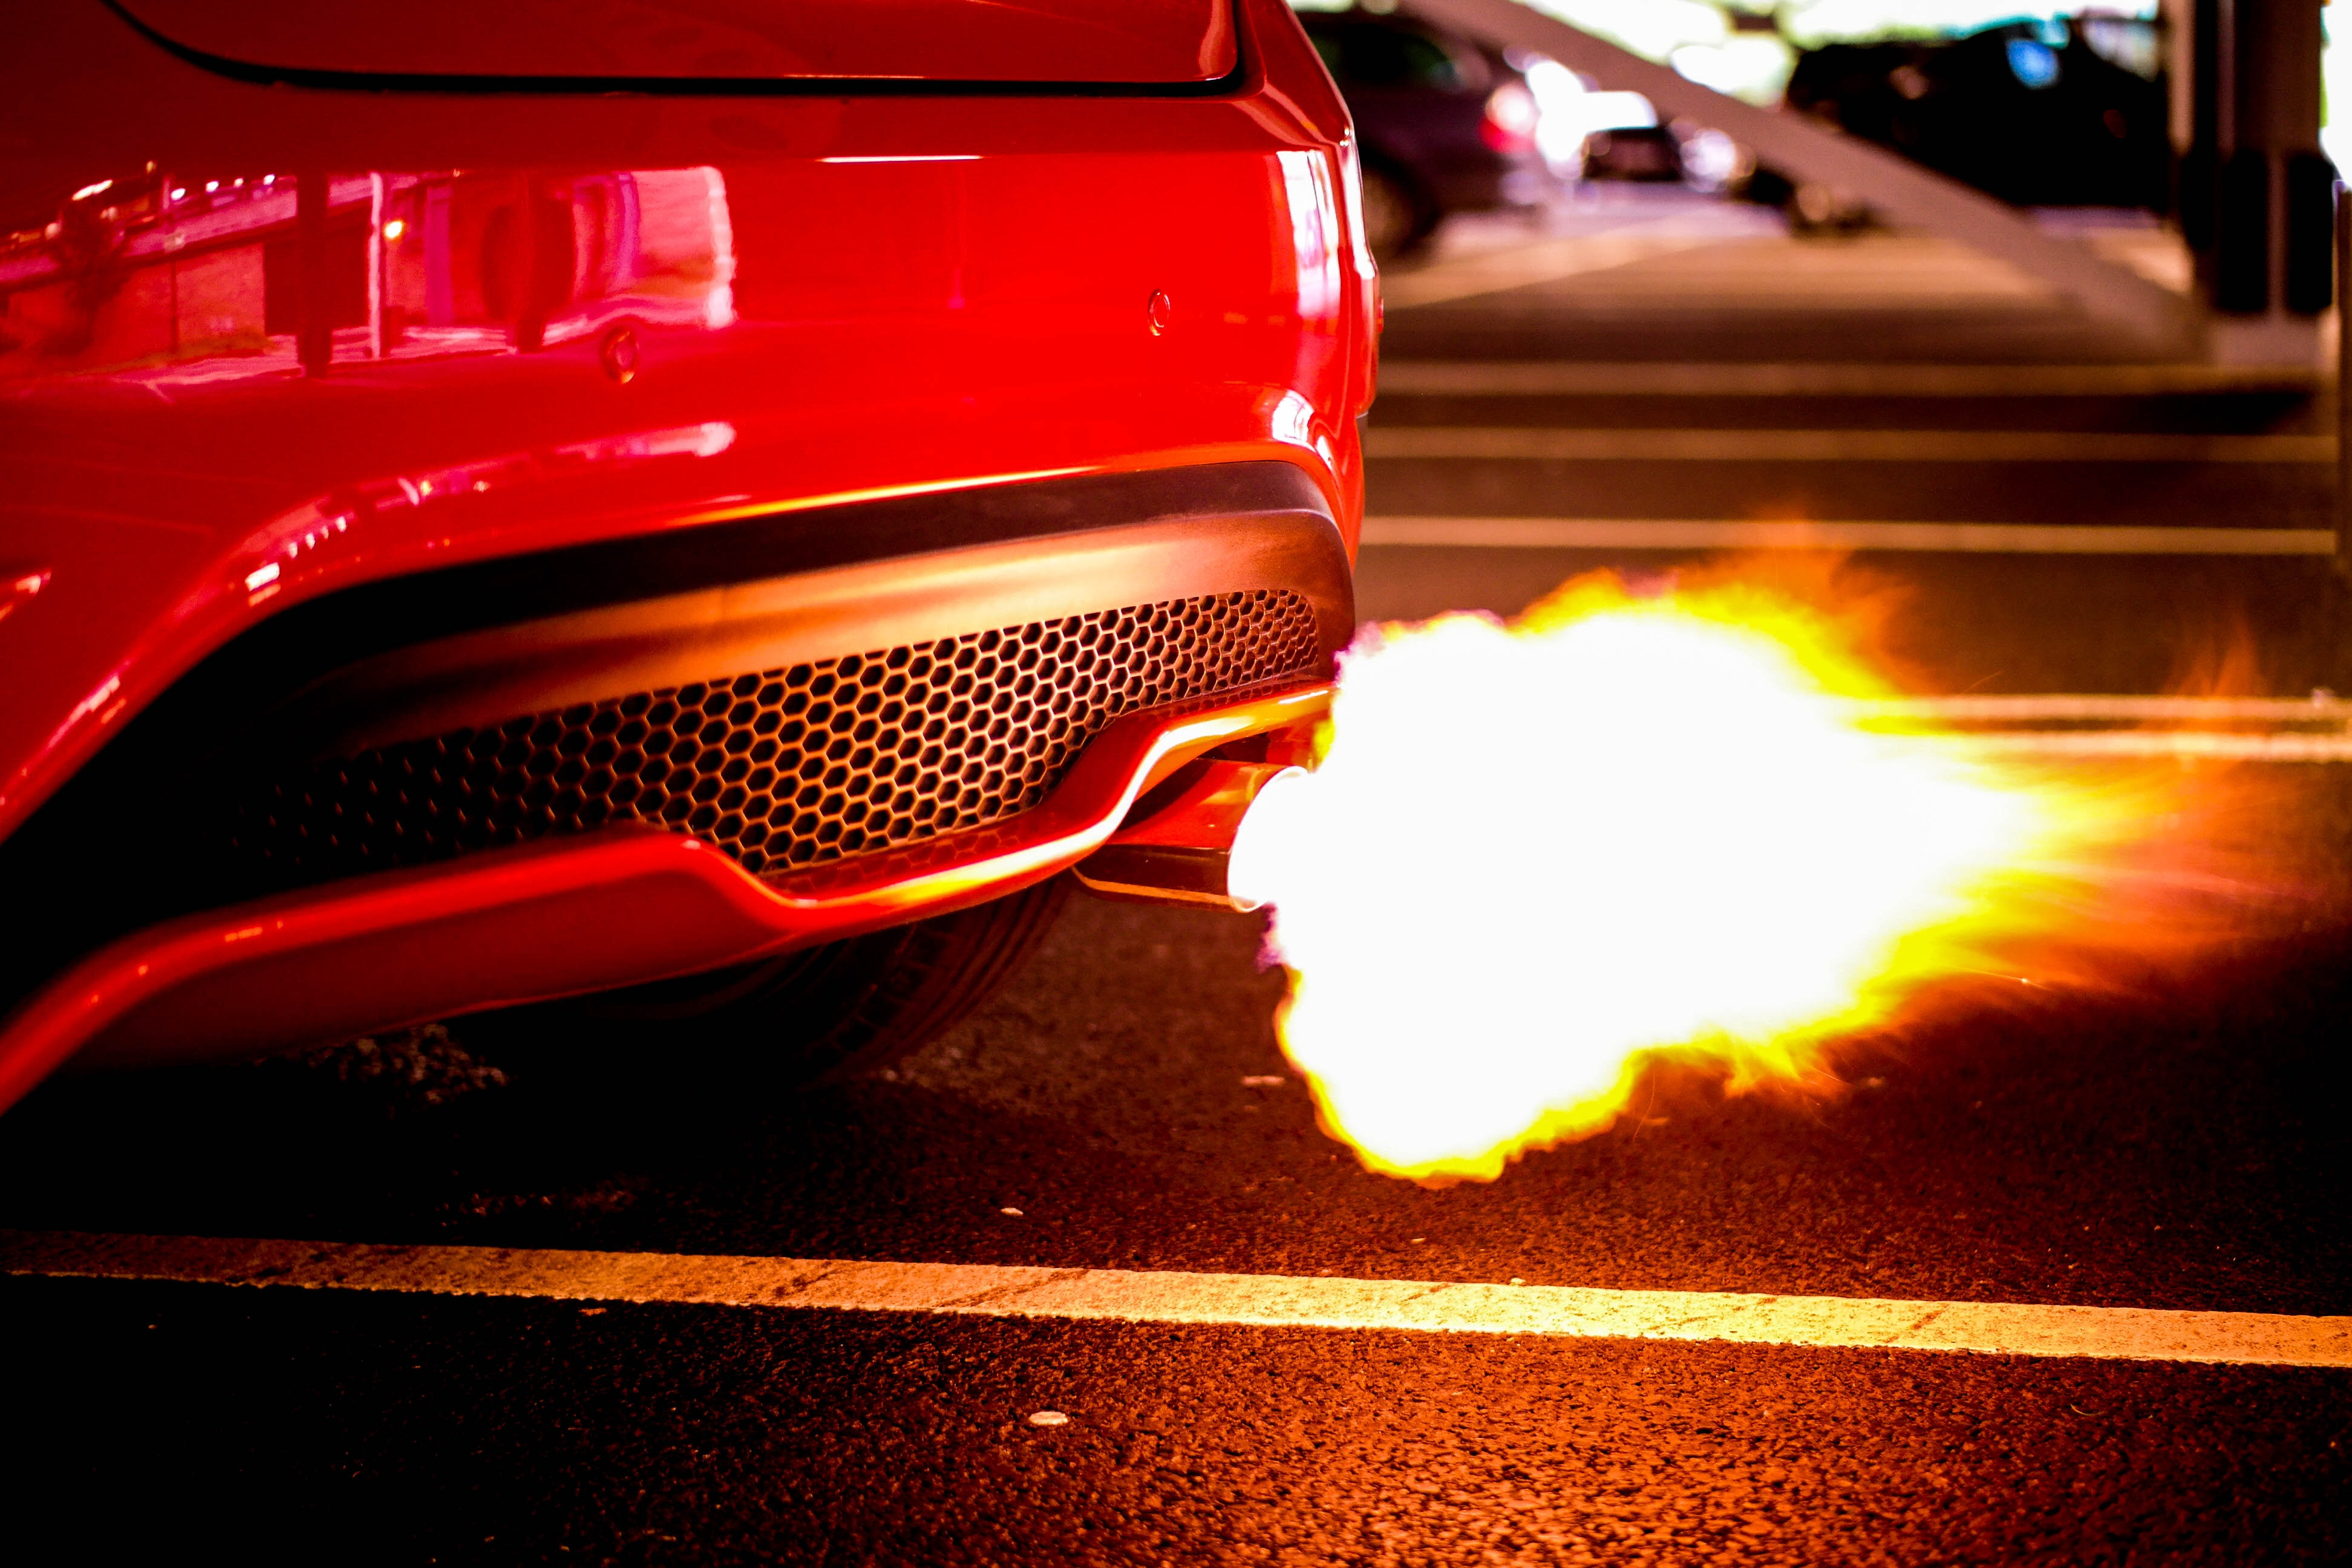 A red sports car sputtering a flame in its exhaust in a night time setting beside a parking lot